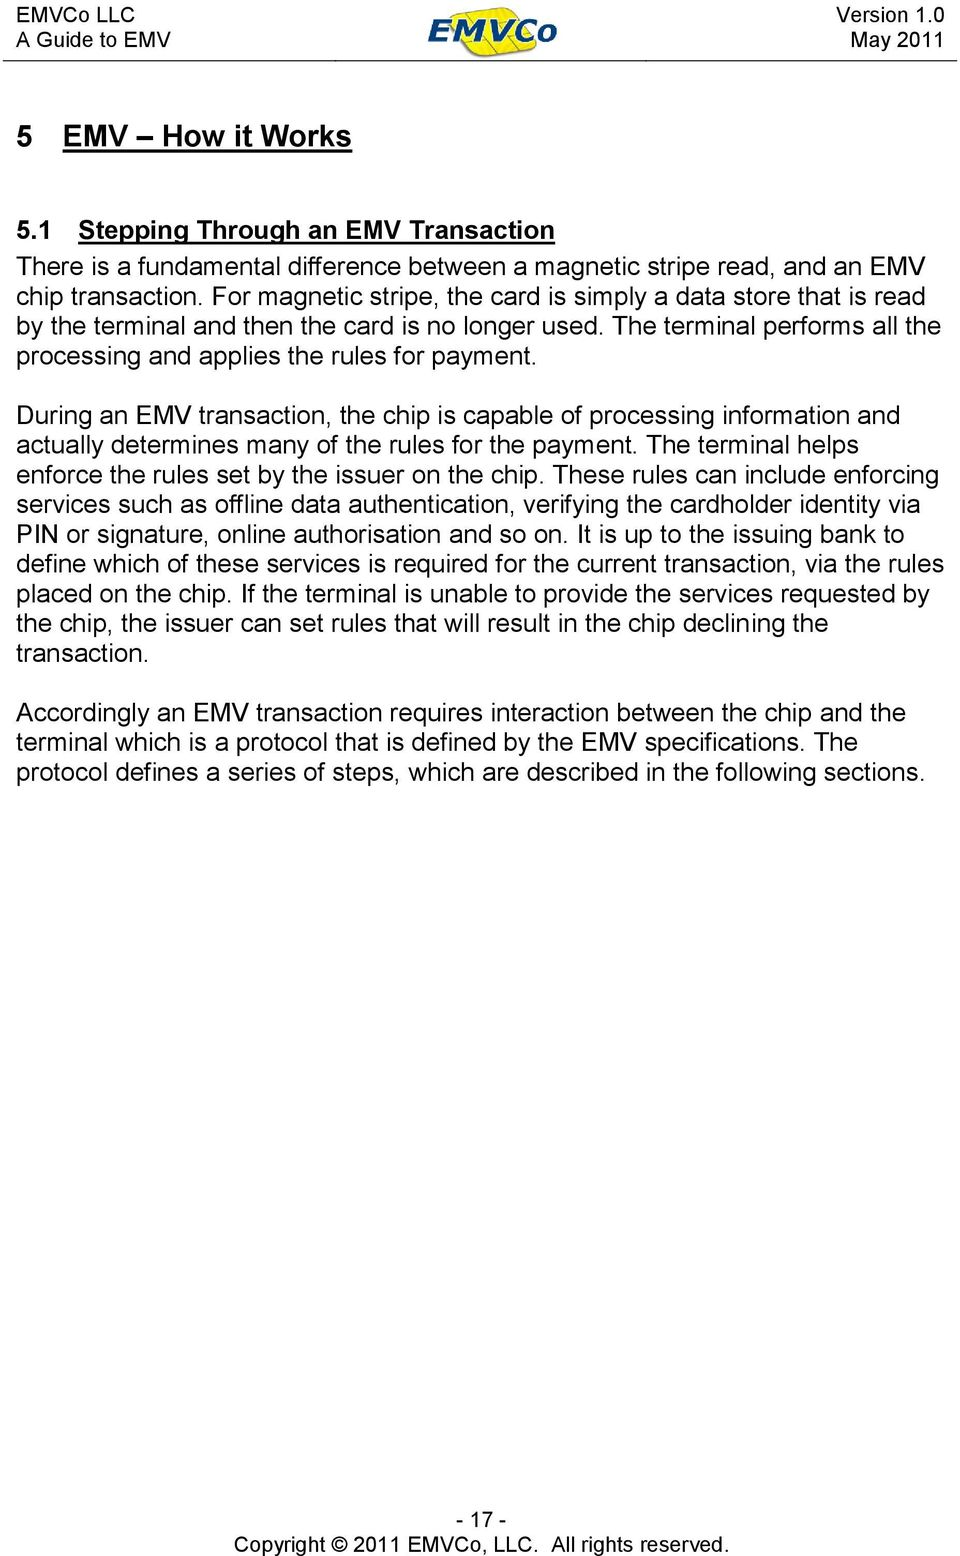 During an EMV transaction, the chip is capable of processing information and actually determines many of the rules for the payment. The terminal helps enforce the rules set by the issuer on the chip.